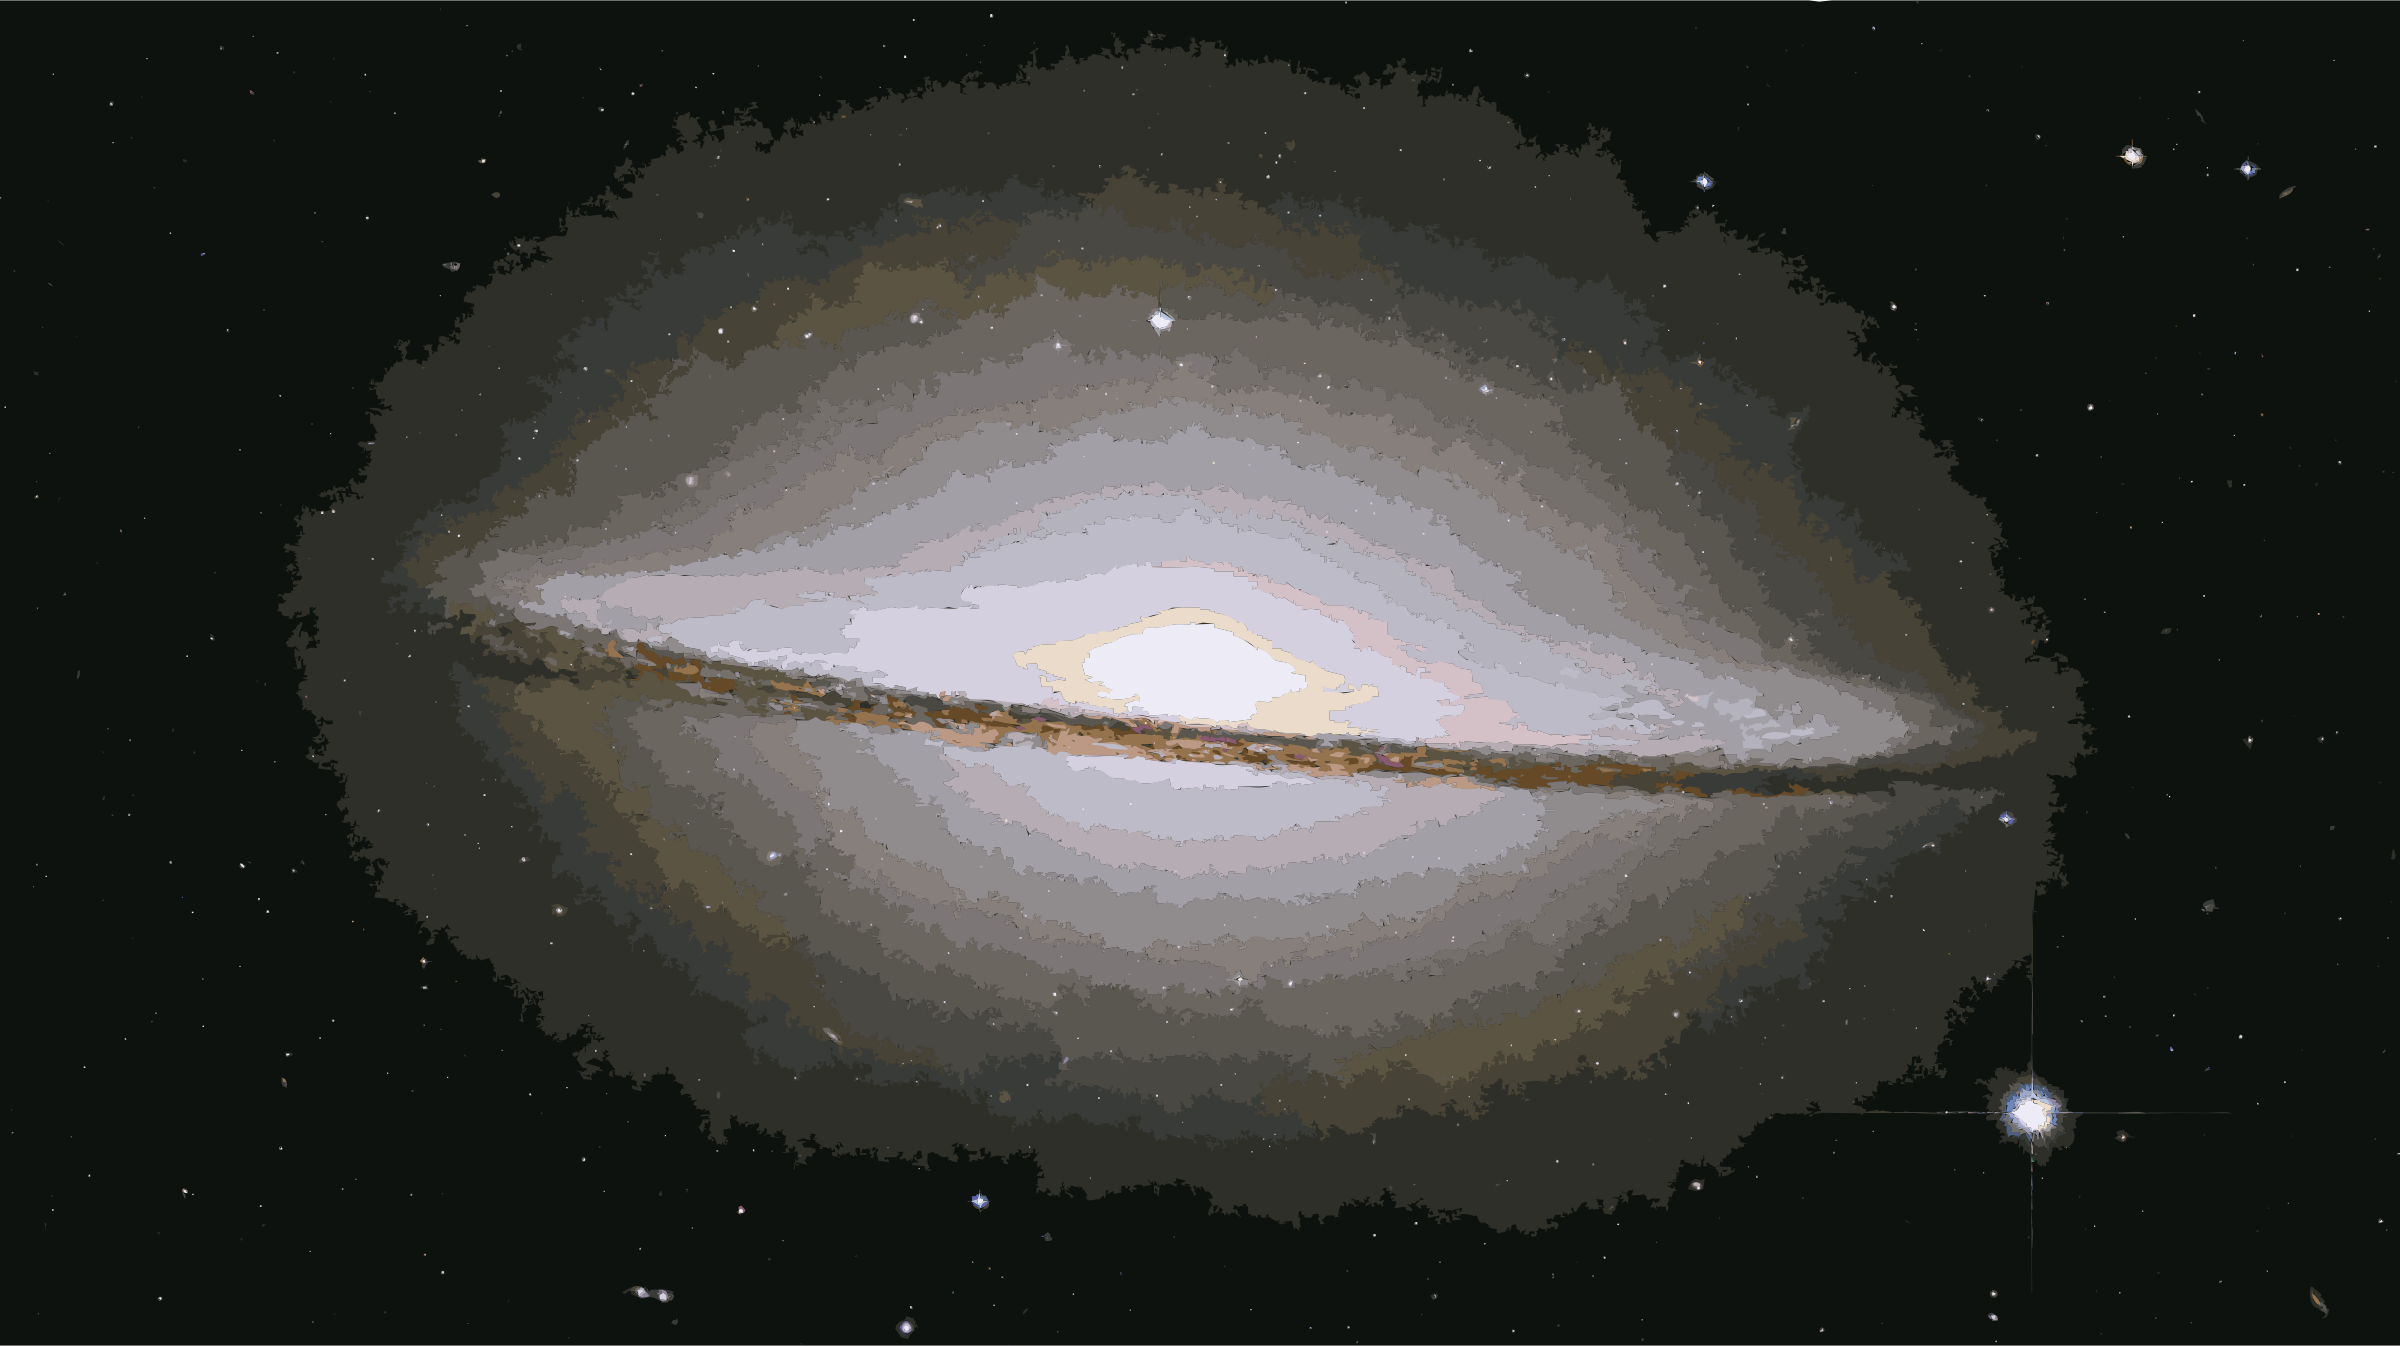 M104 ngc4594 sombrero galaxy hi-res by 3we2nn+8w9uc0fun68aw